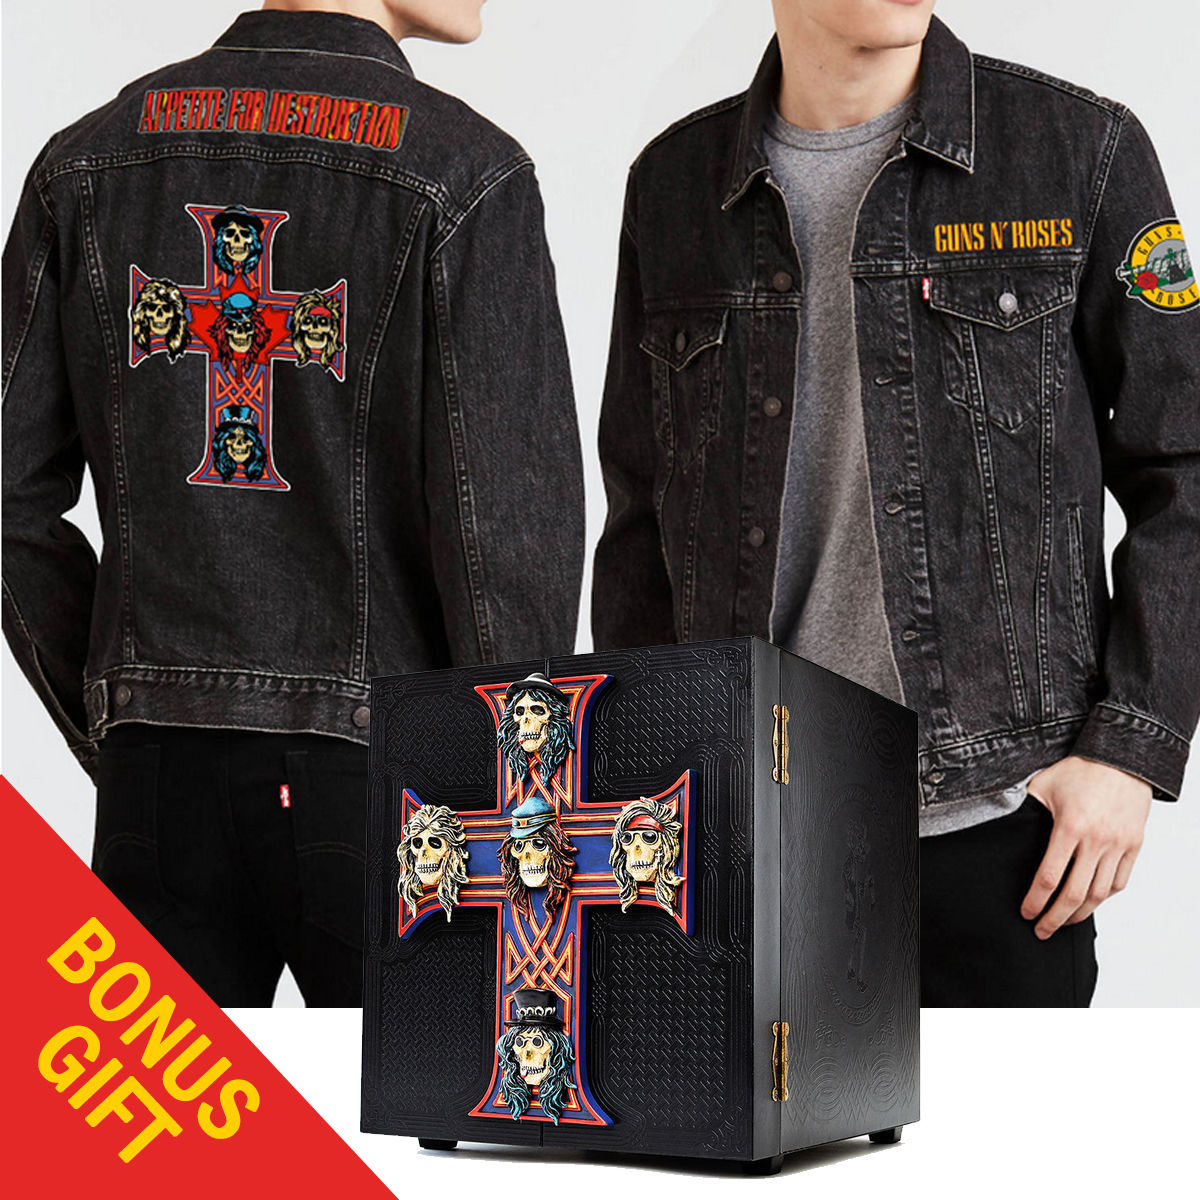 Guns N' Roses Official Canadian store